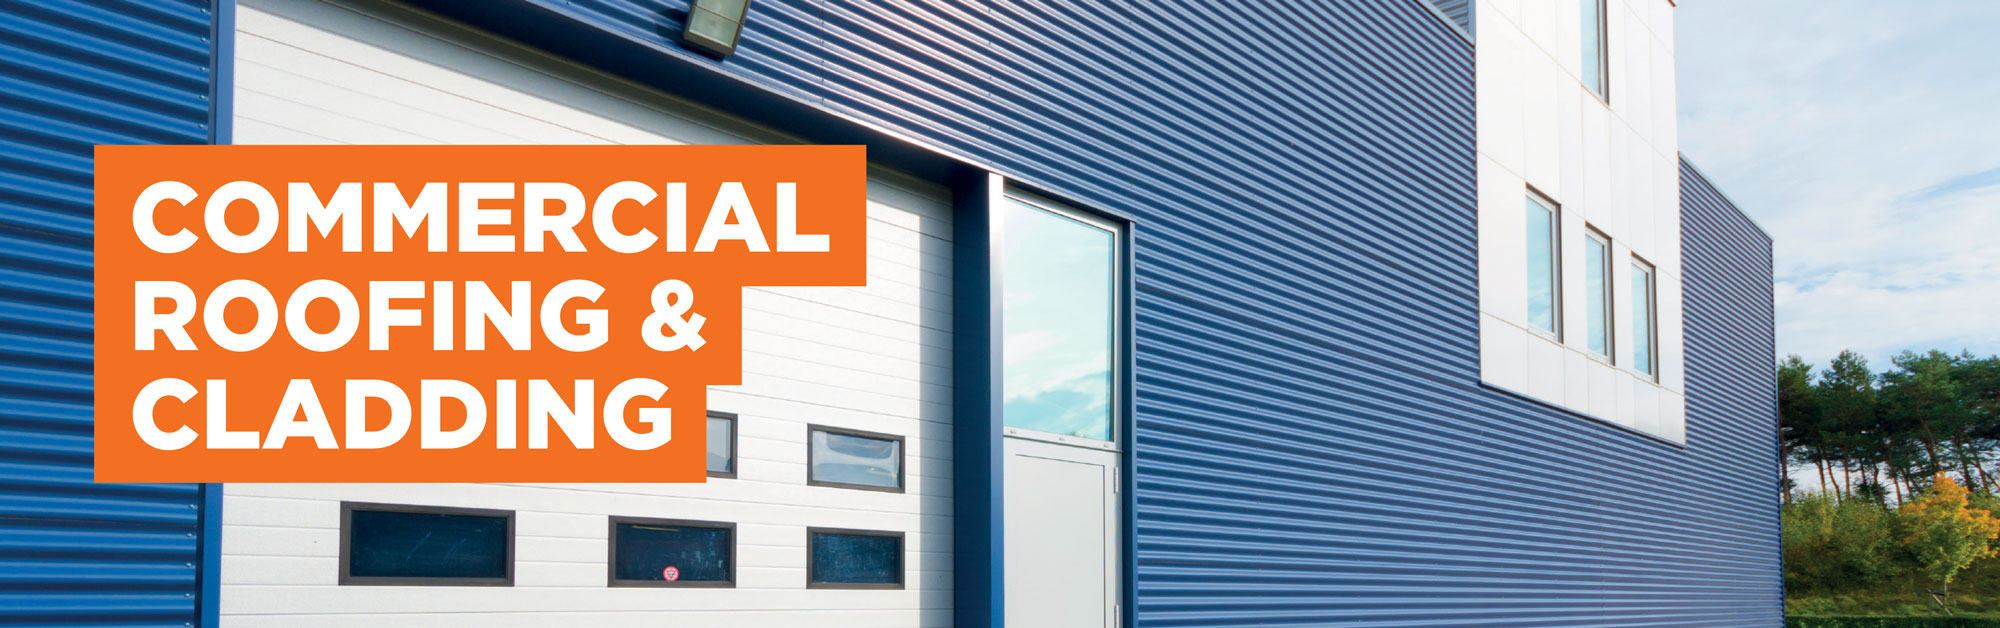 Commercial Roofing & Cladding